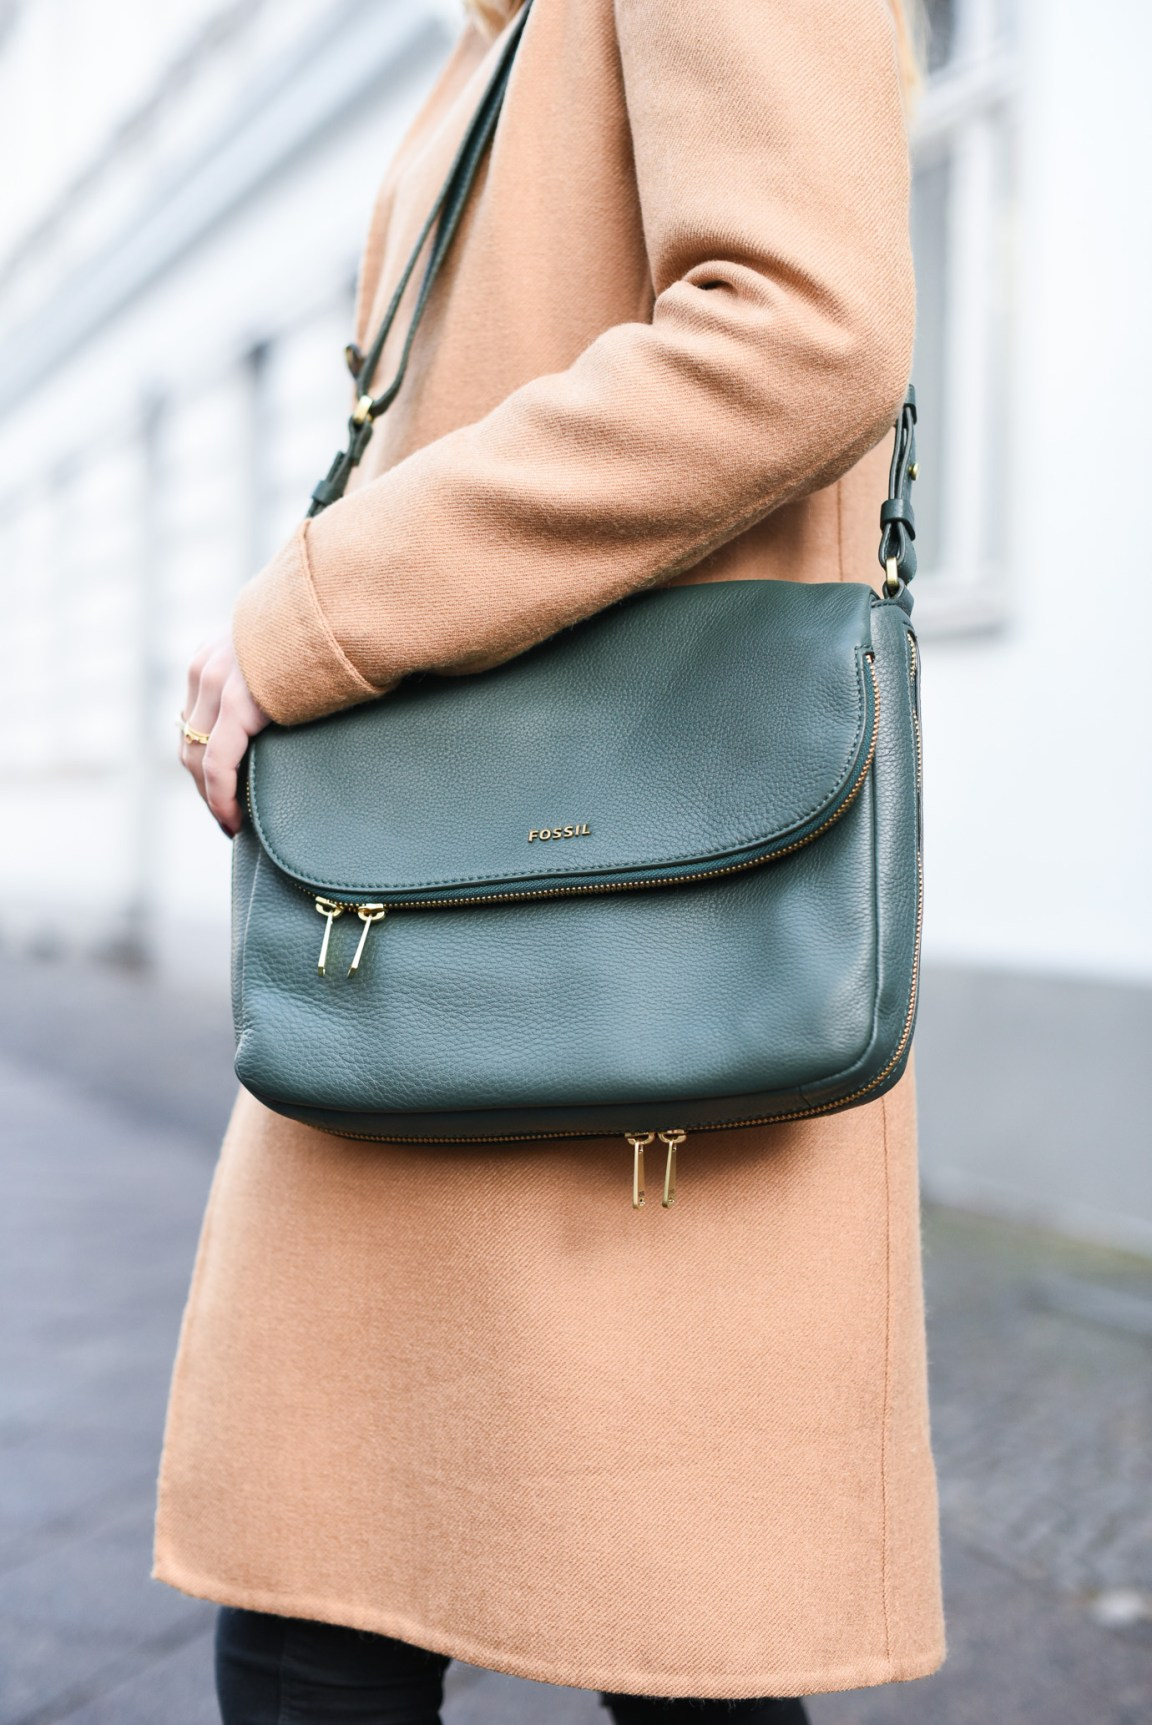 Fossil_Bag_Outfit_5